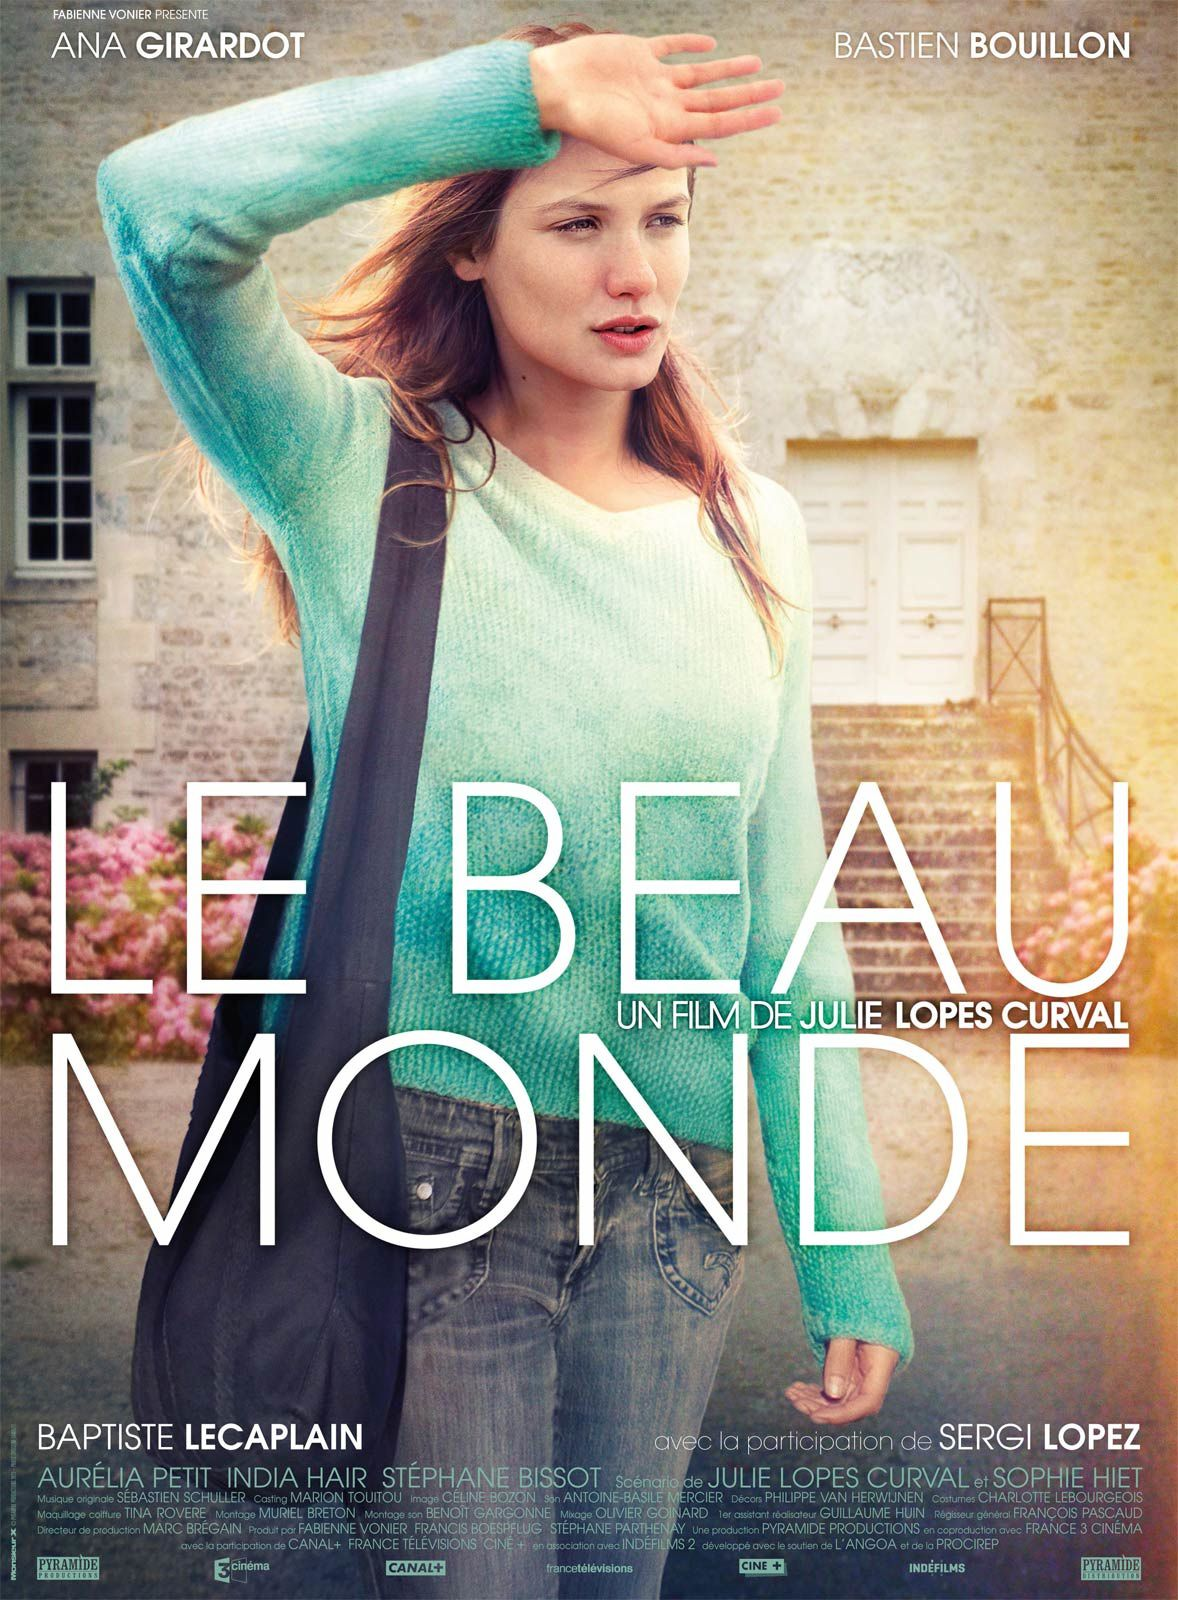 LE BEAU MONDE / CINEMA / Julie Lopes-Curval . 2014